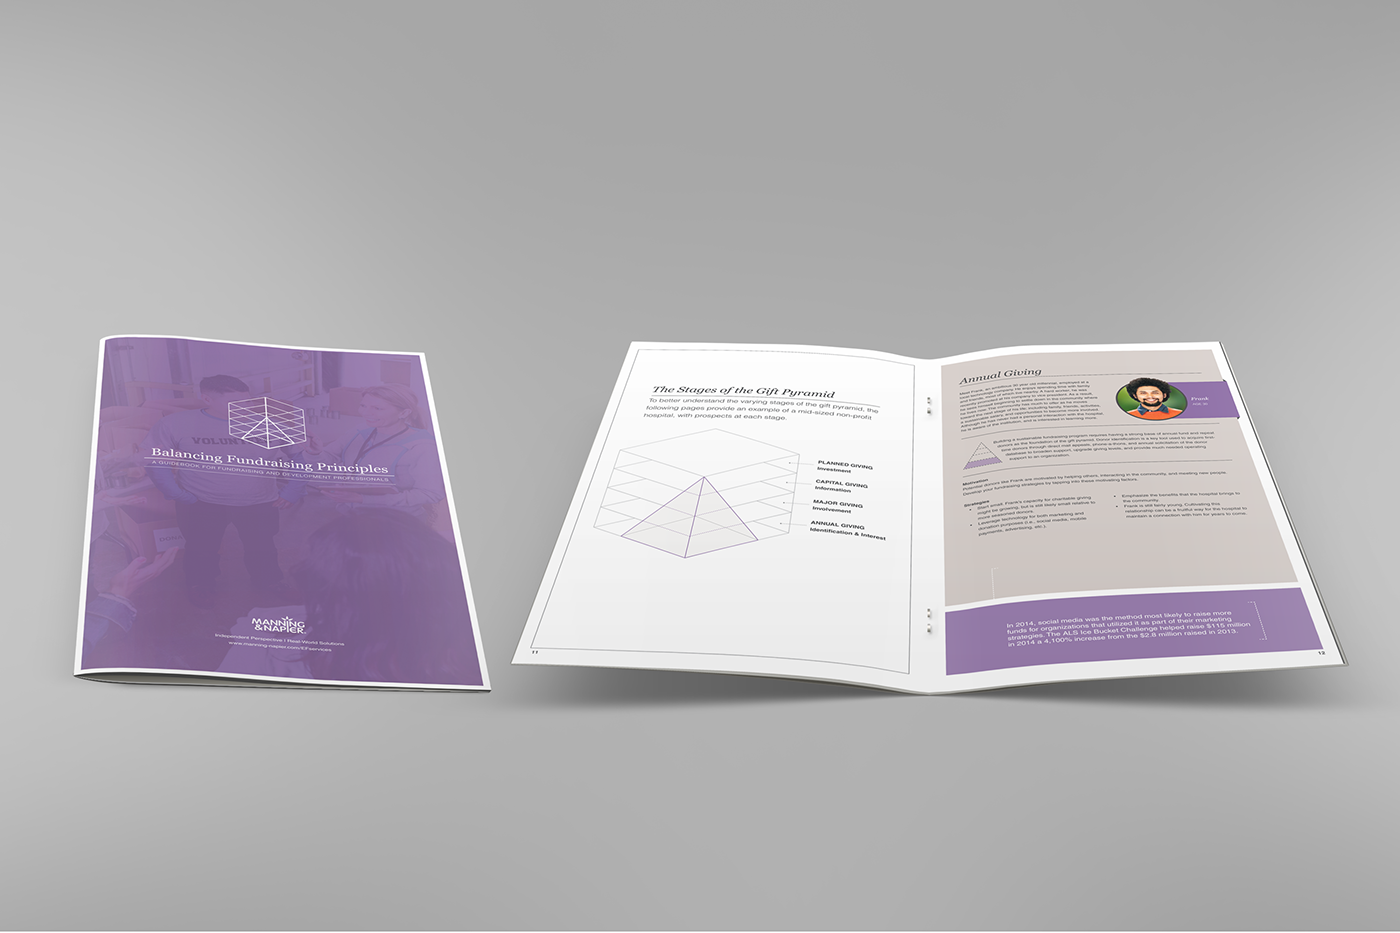 brochure financial investing print Financial Services Investment firm